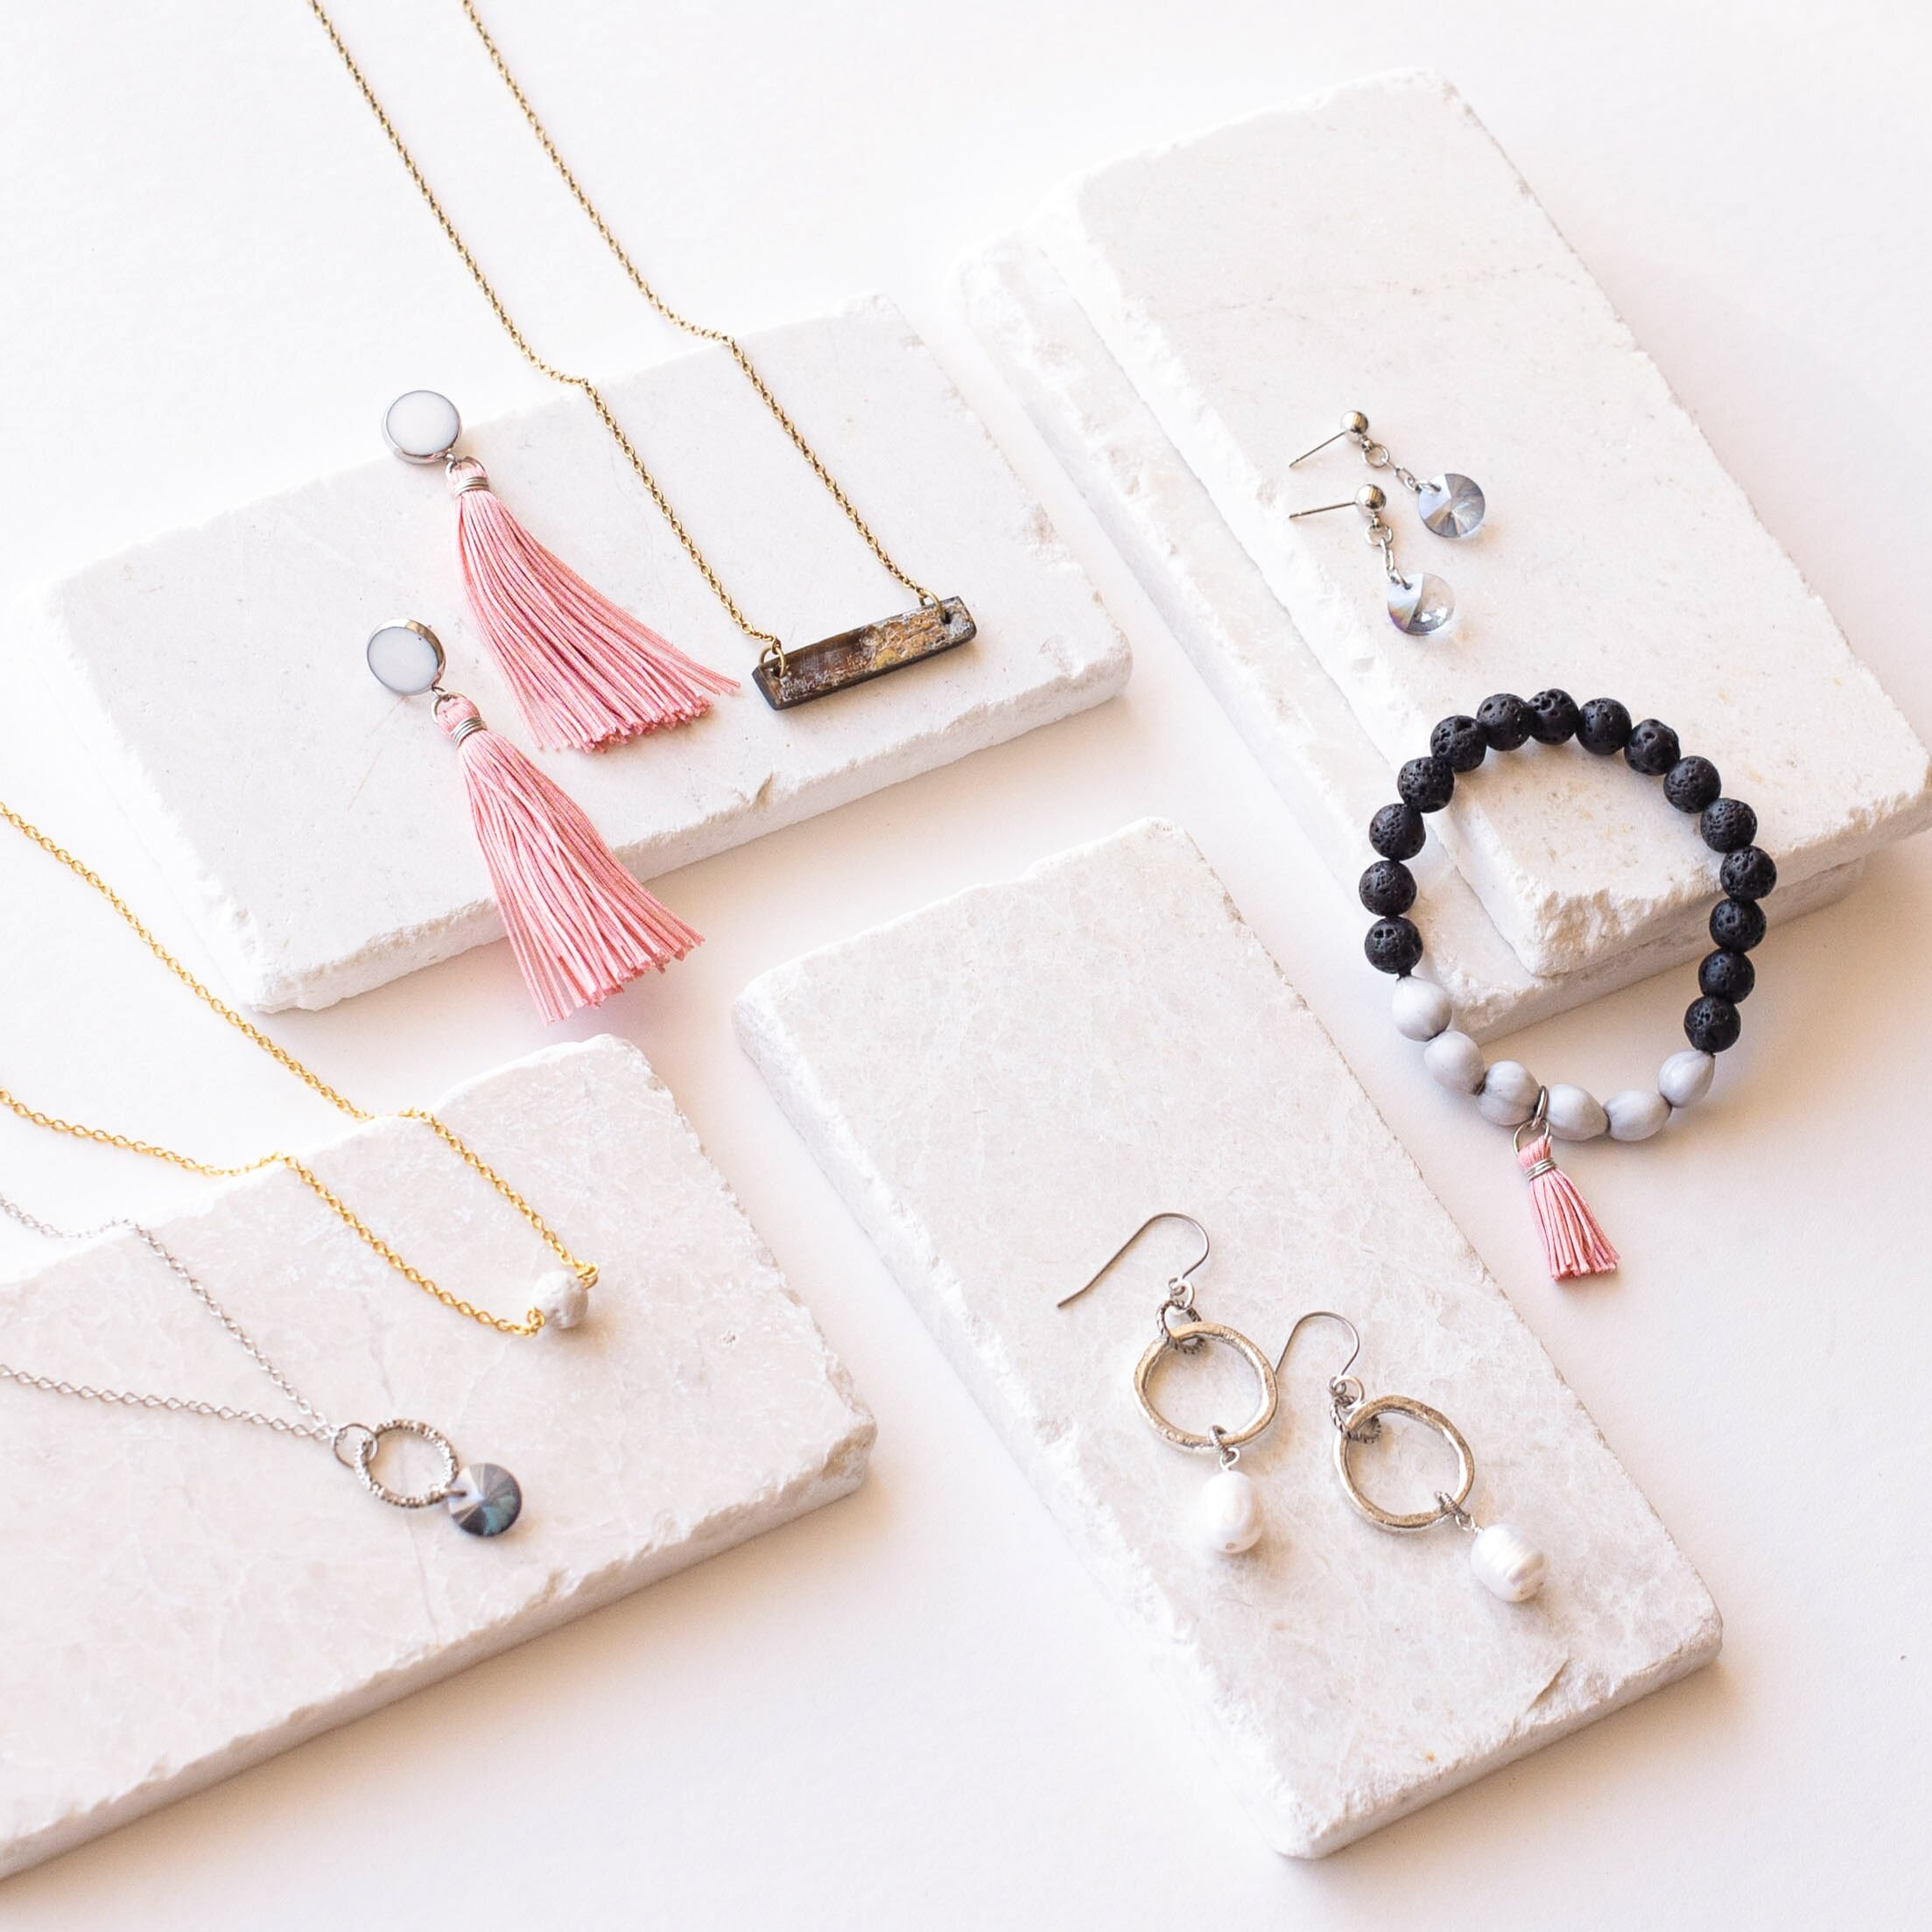 Fair Trade Jewelry Brands